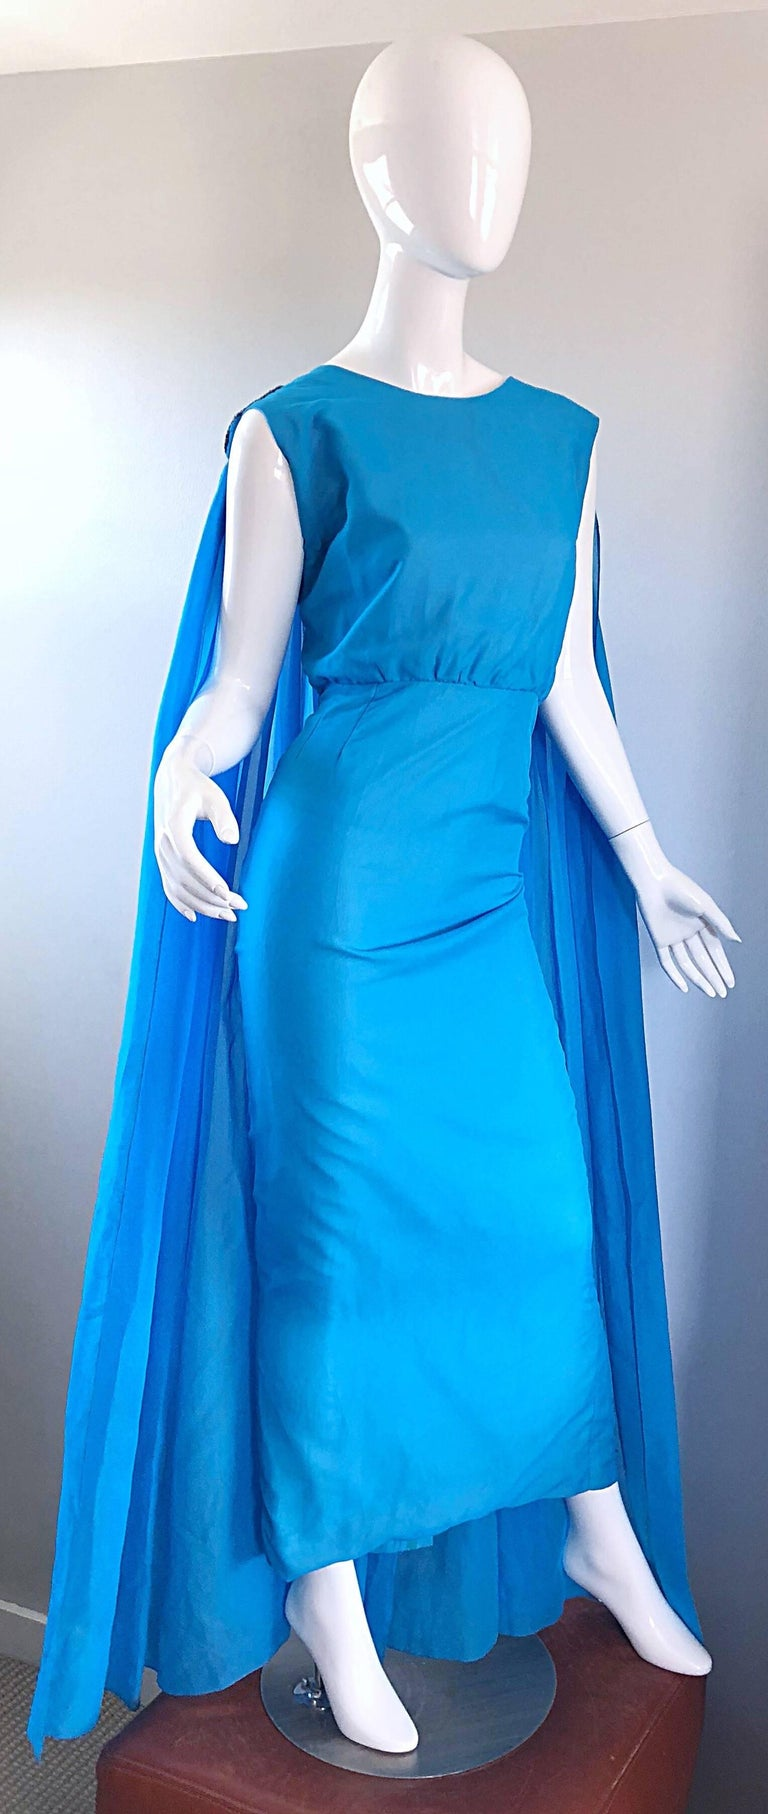 Incredible 1960s Turquoise Blue Chiffon Rhinestone Encrusted Vintage Cape Gown For Sale 5